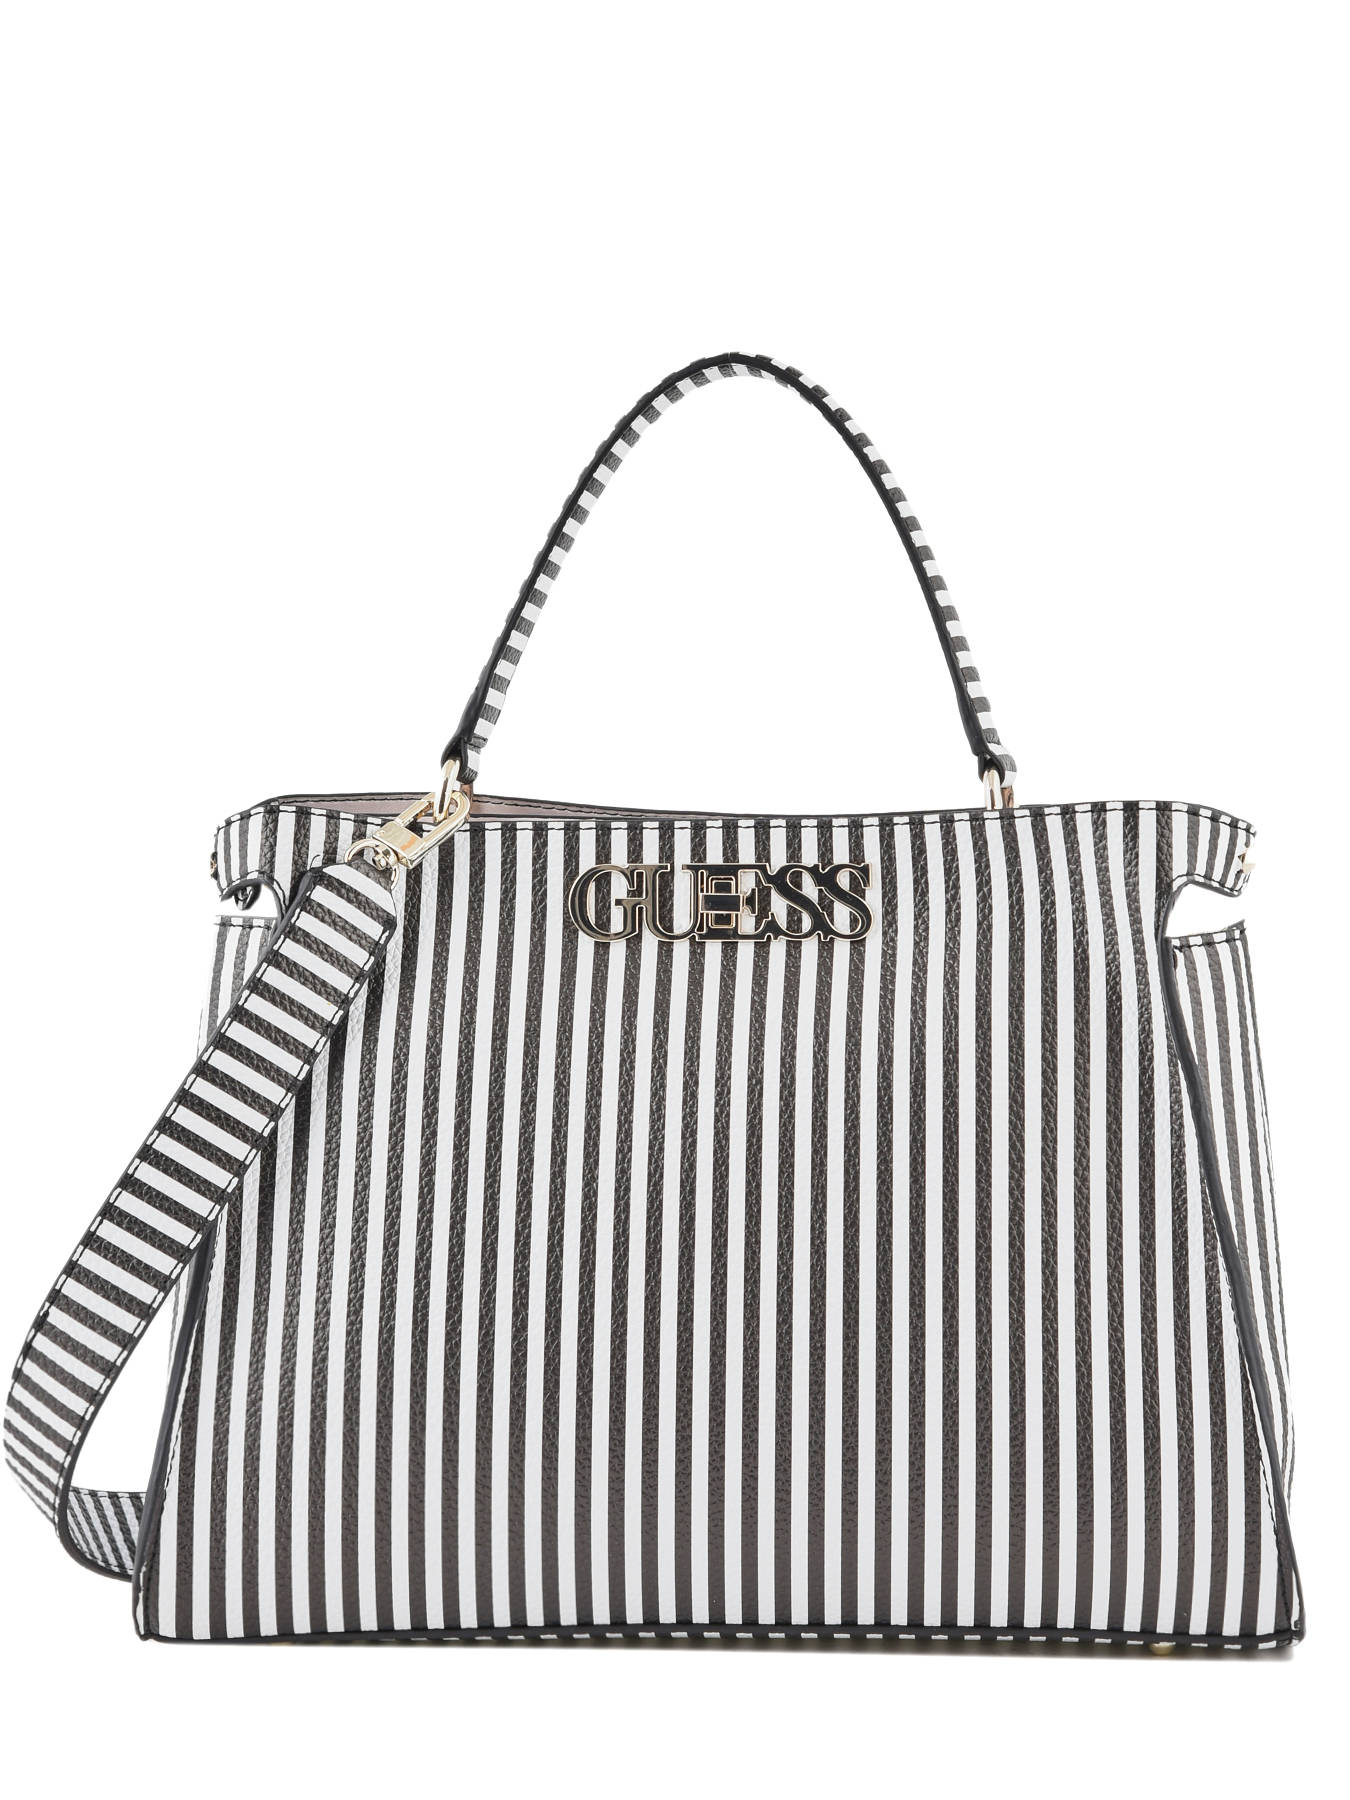 Sac cartable Uptown chic GUESS